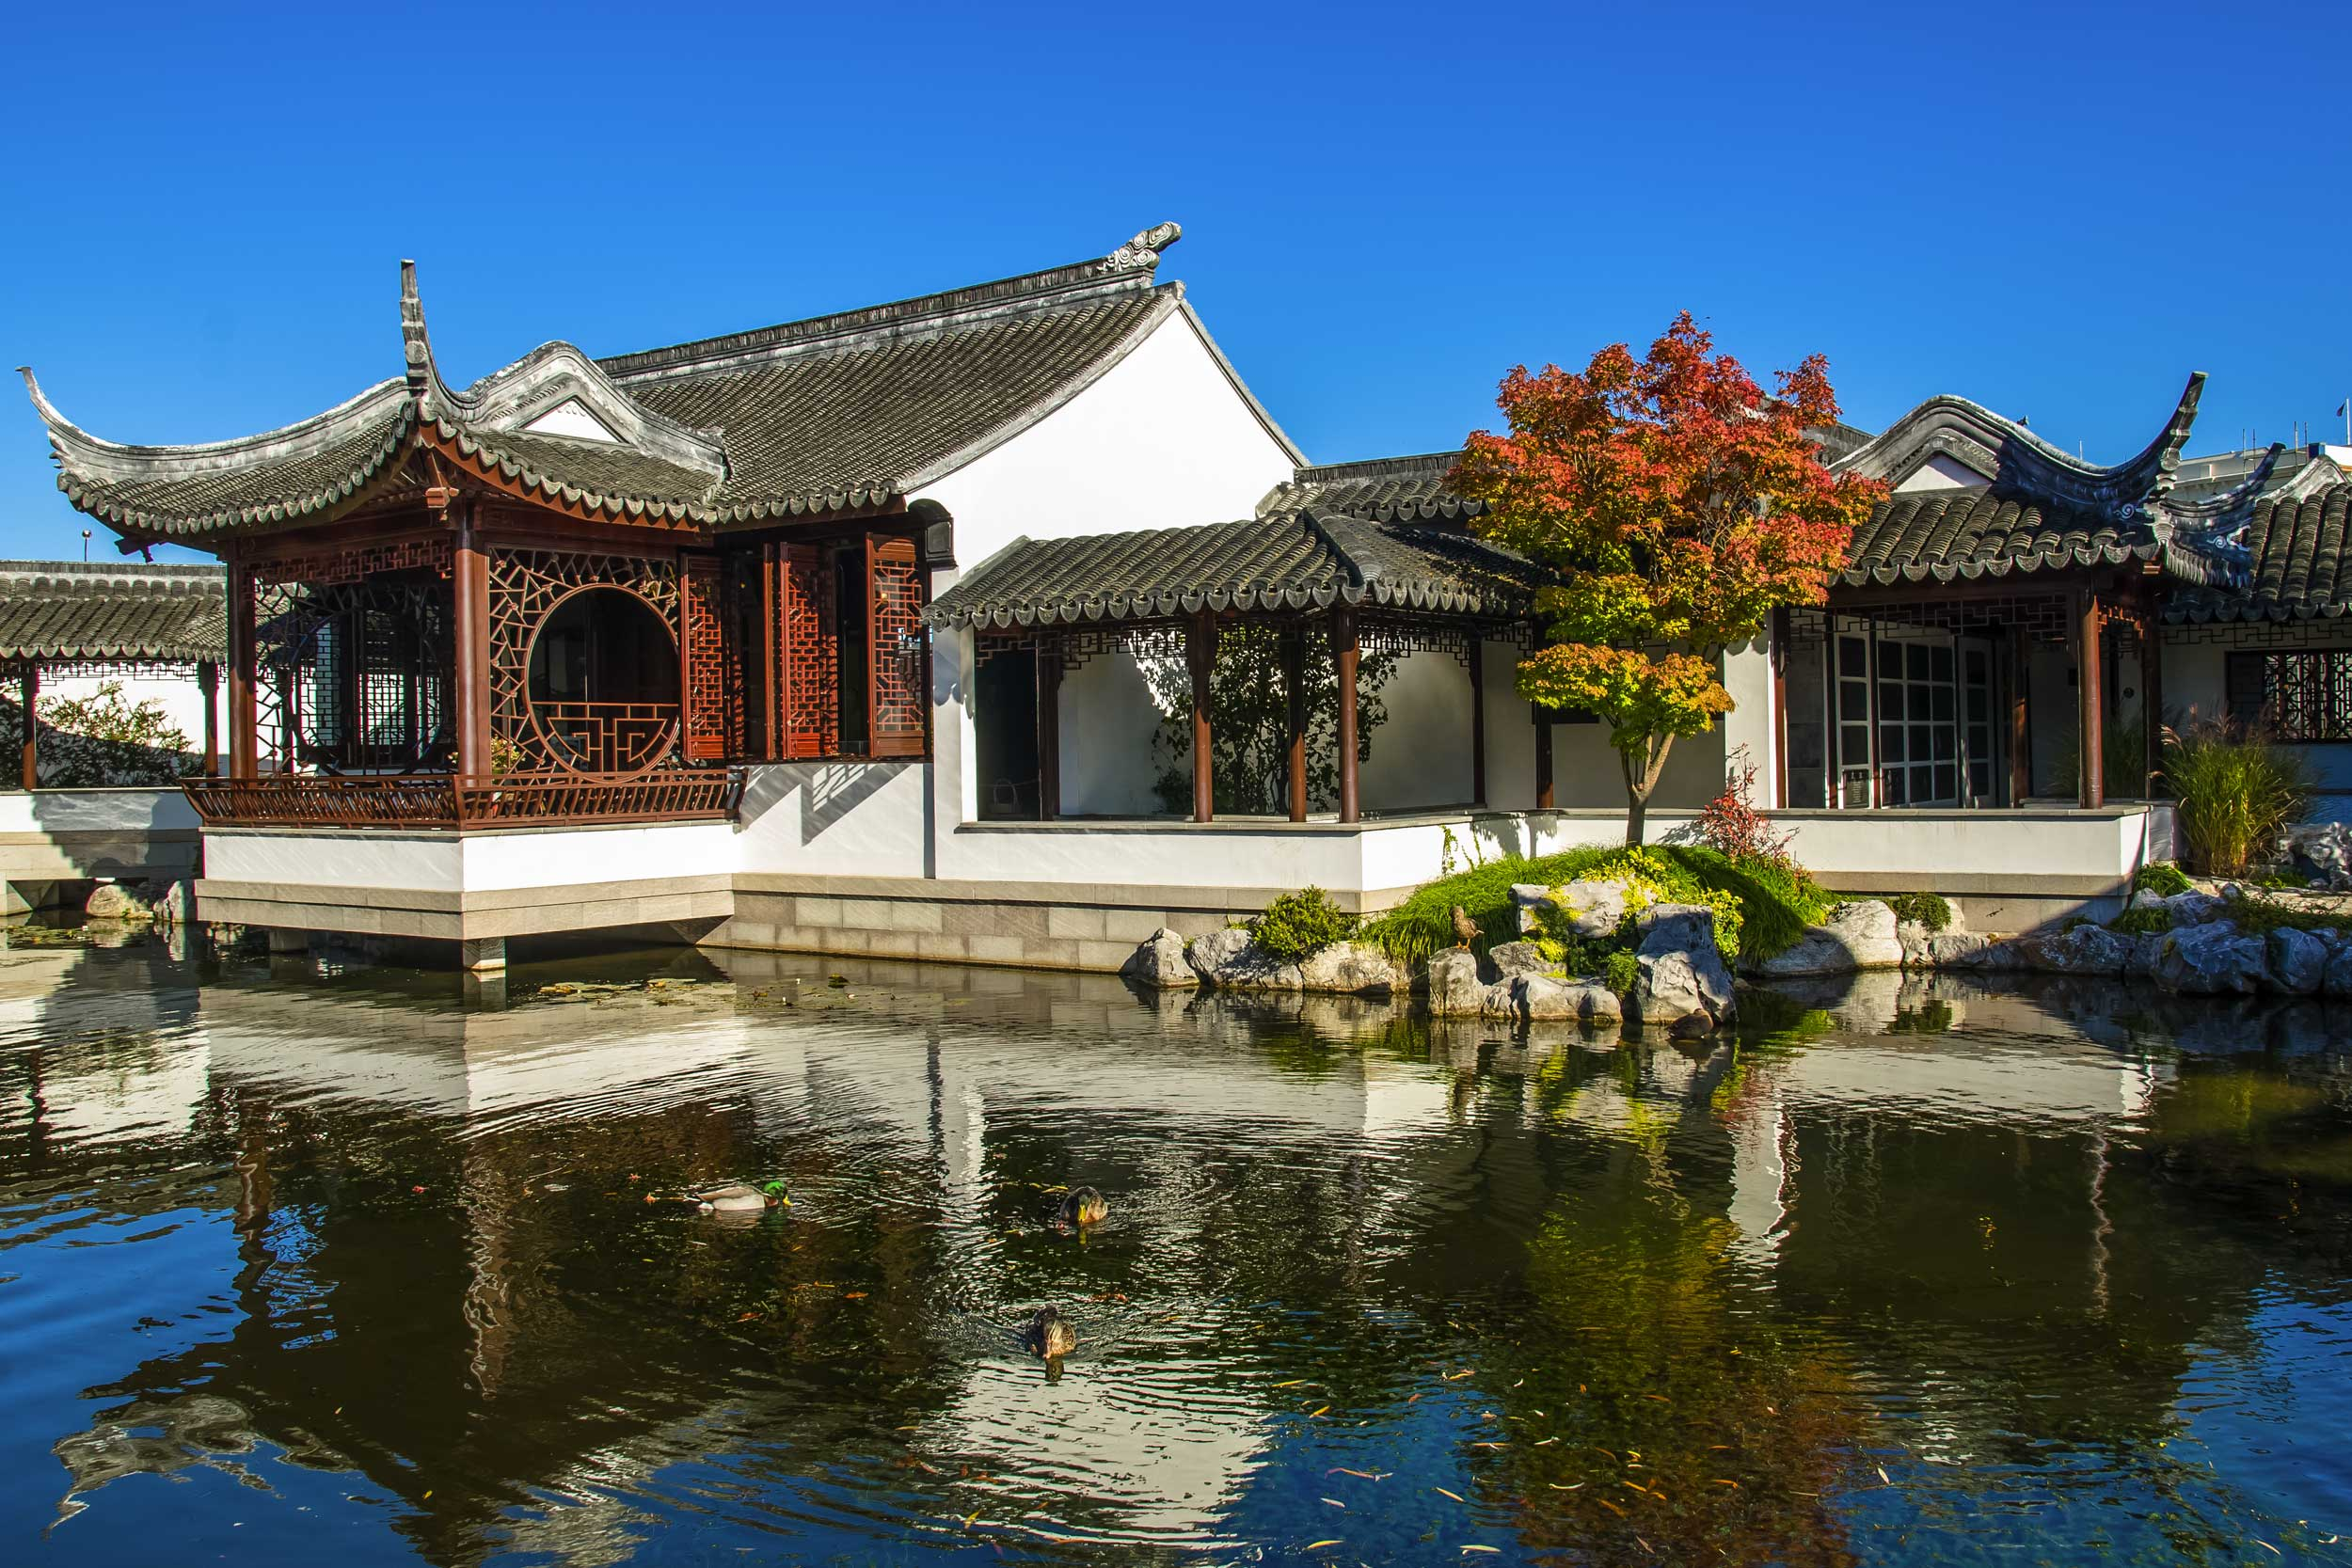 Chinese style building by a pond.